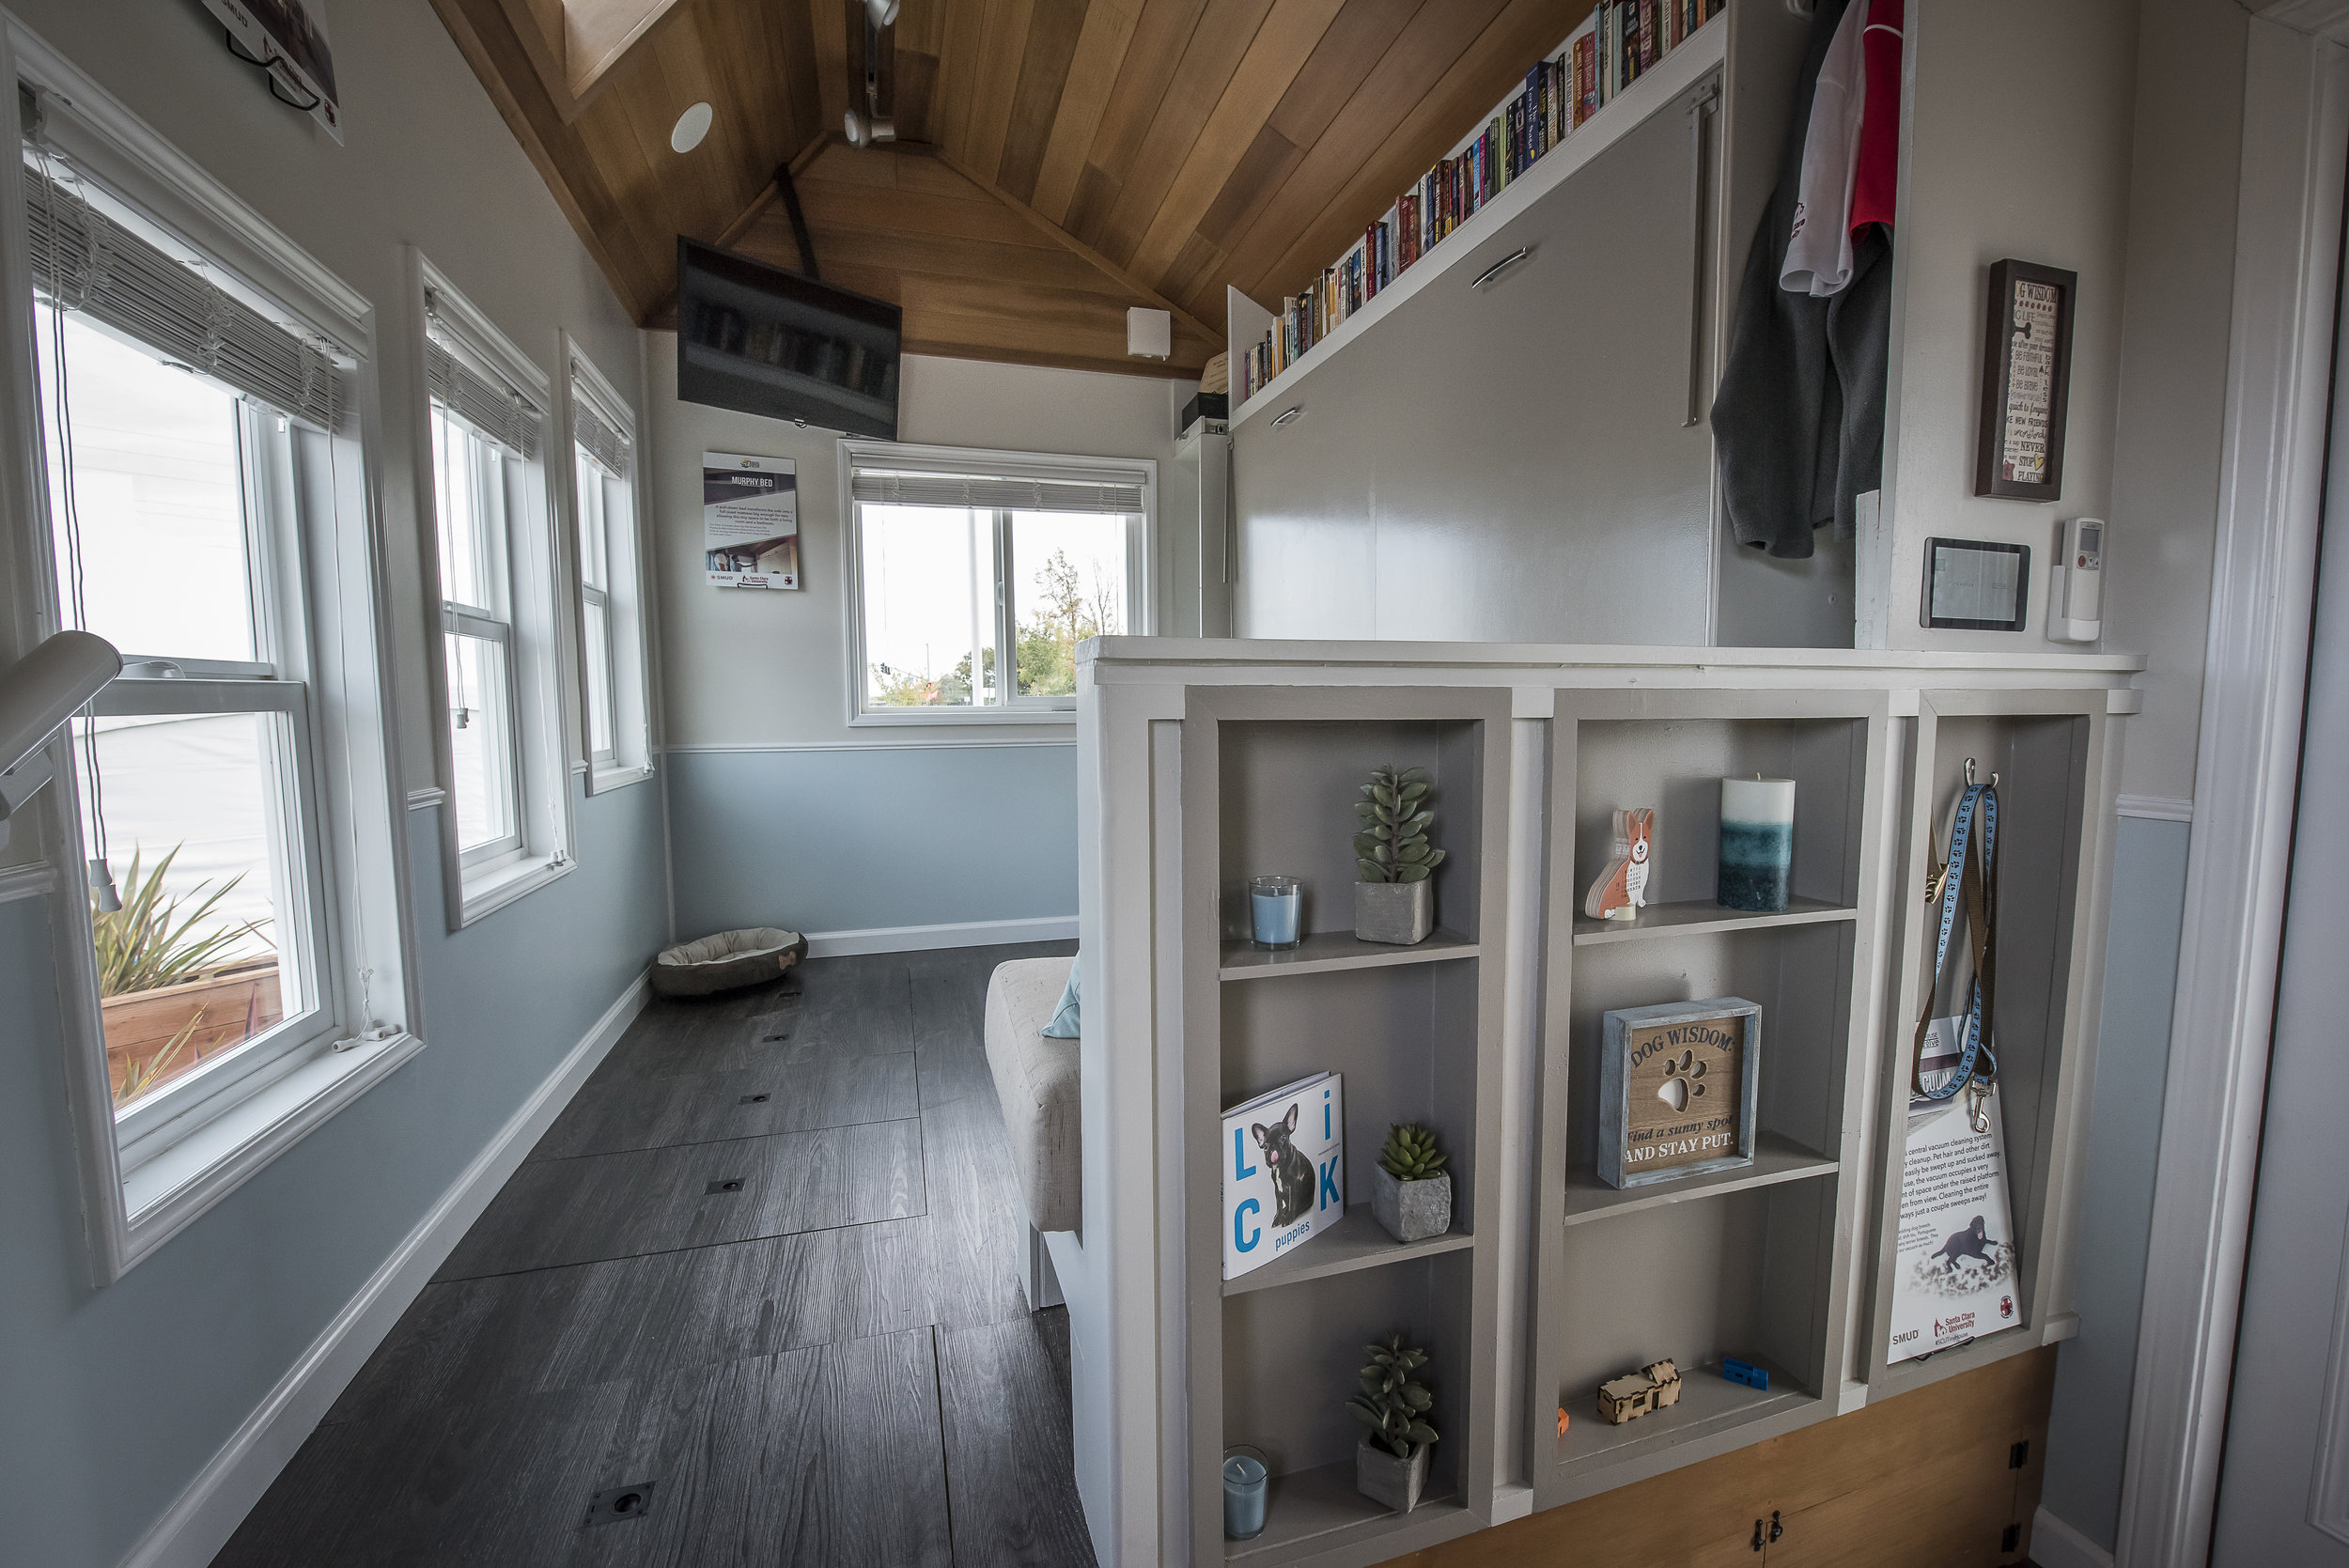 JL161013_4161_0207_TinyHouseCompetition.jpg